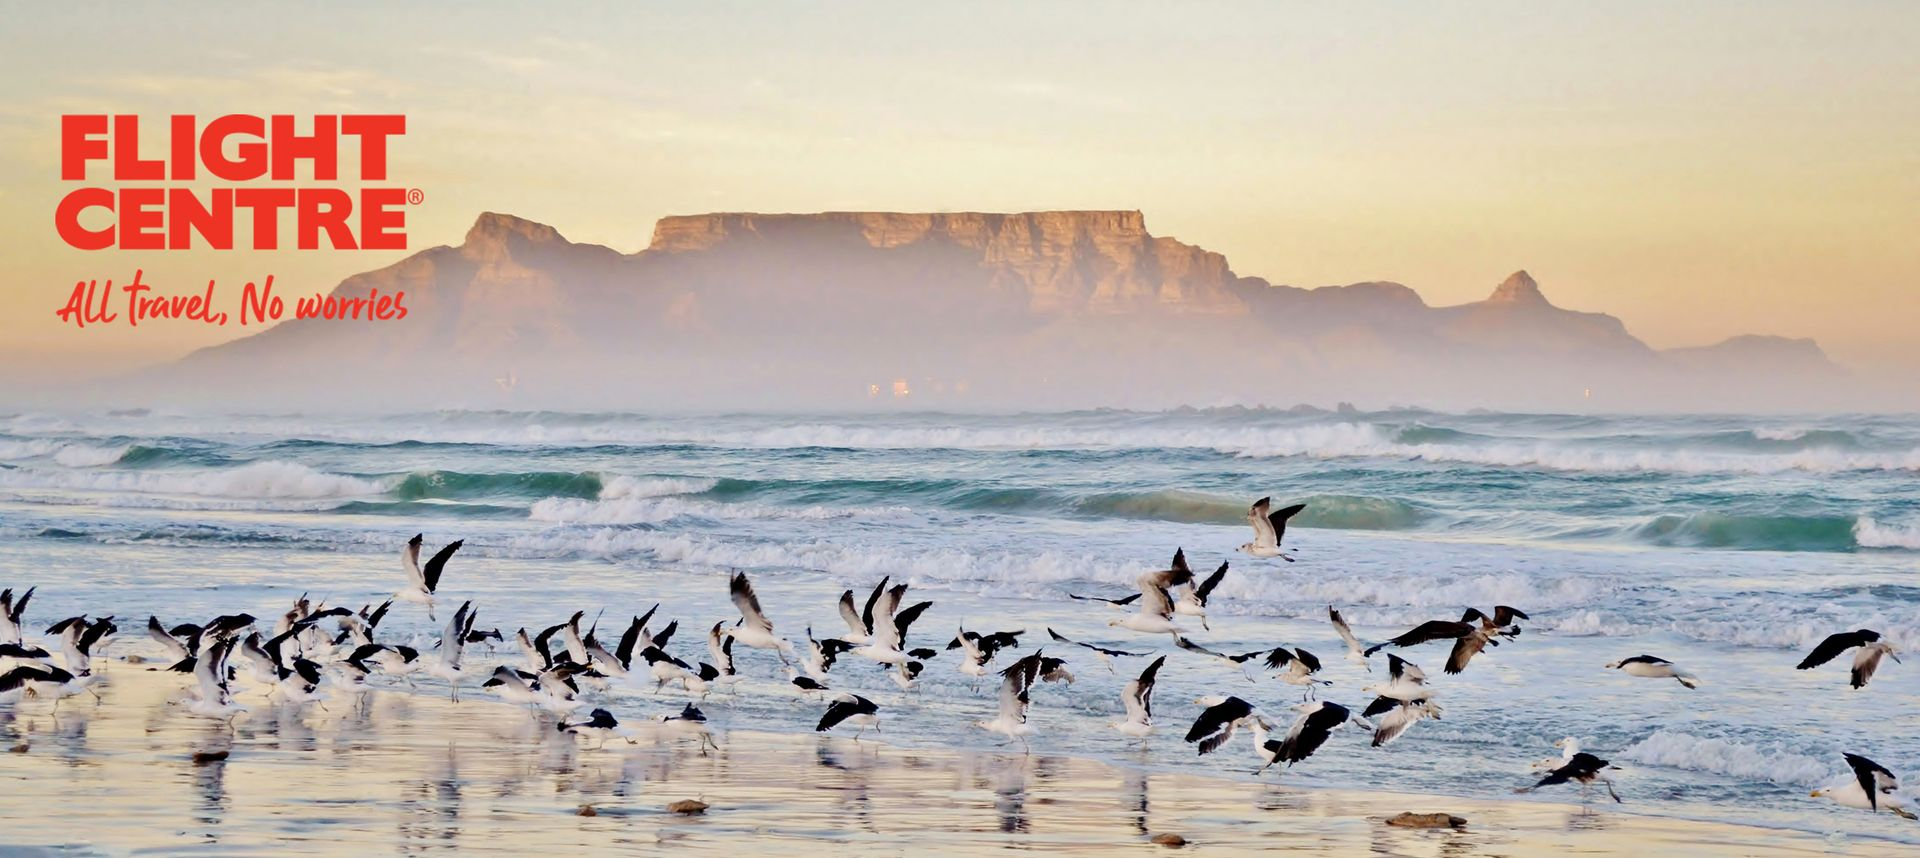 Table Mountain, South Africa (Shutterstock)